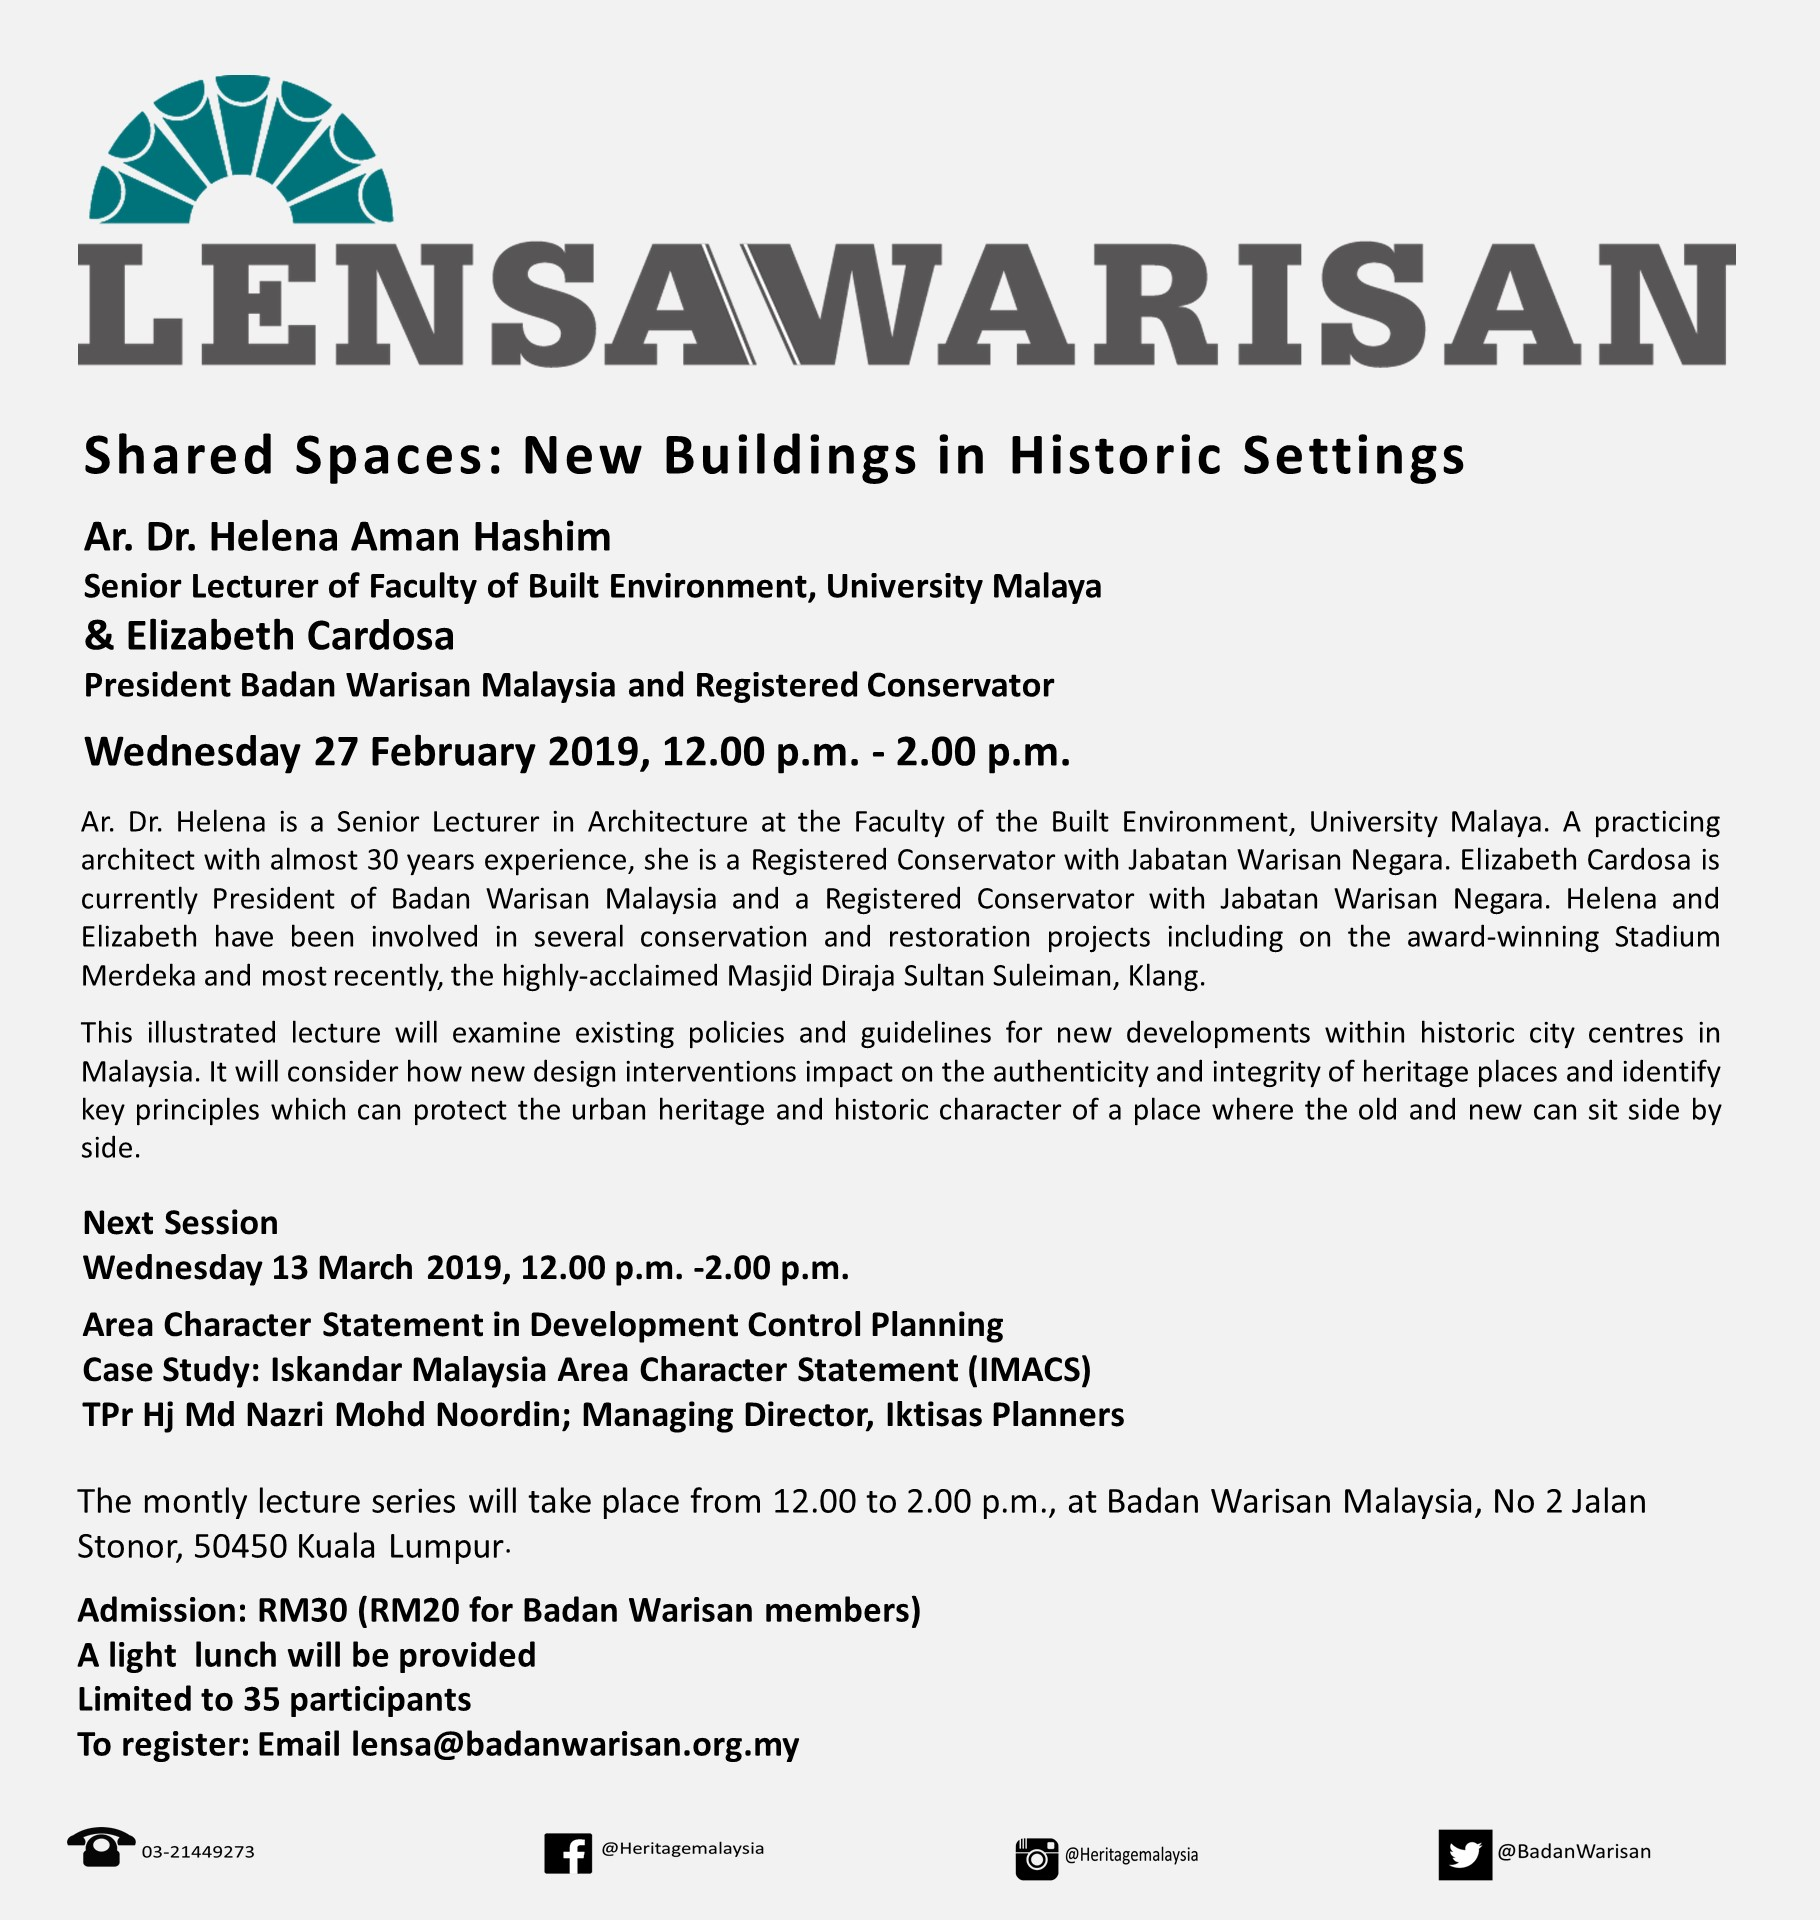 Shared Spaces: New Buildings in Historic Settings by Ar  Dr